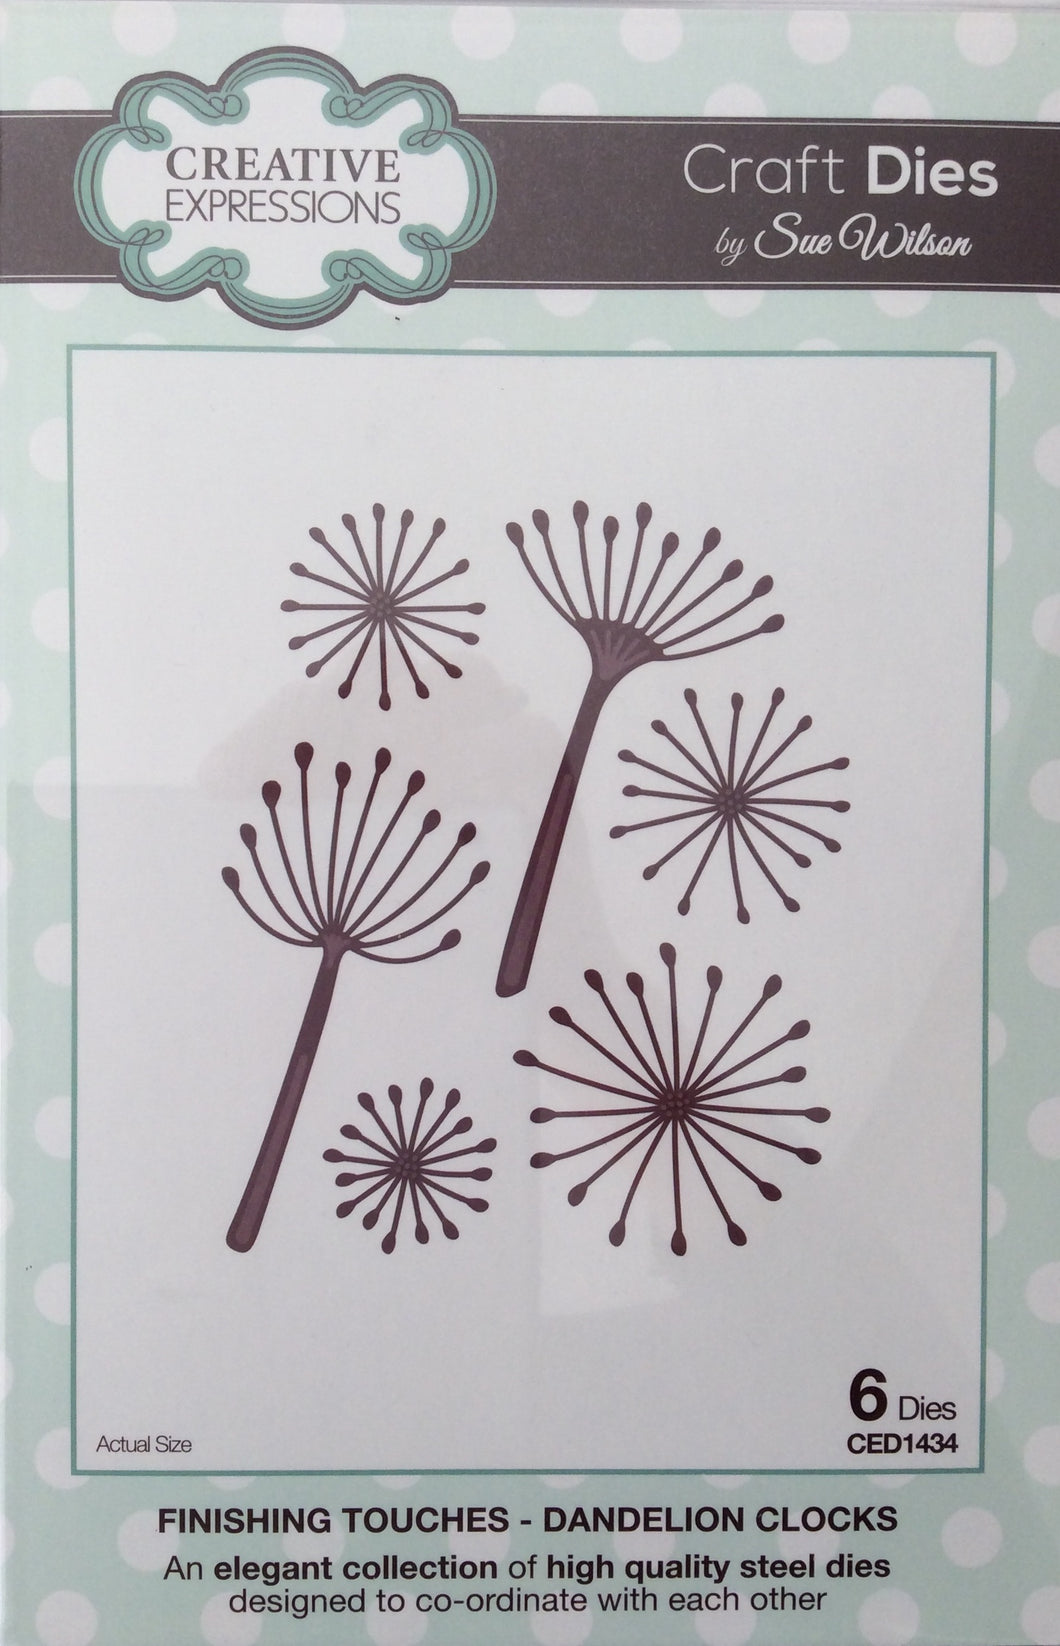 Creative Expressions Craft Dies by Sue Wilson Finishing Touches - Dandelion Clocks 6 Dies